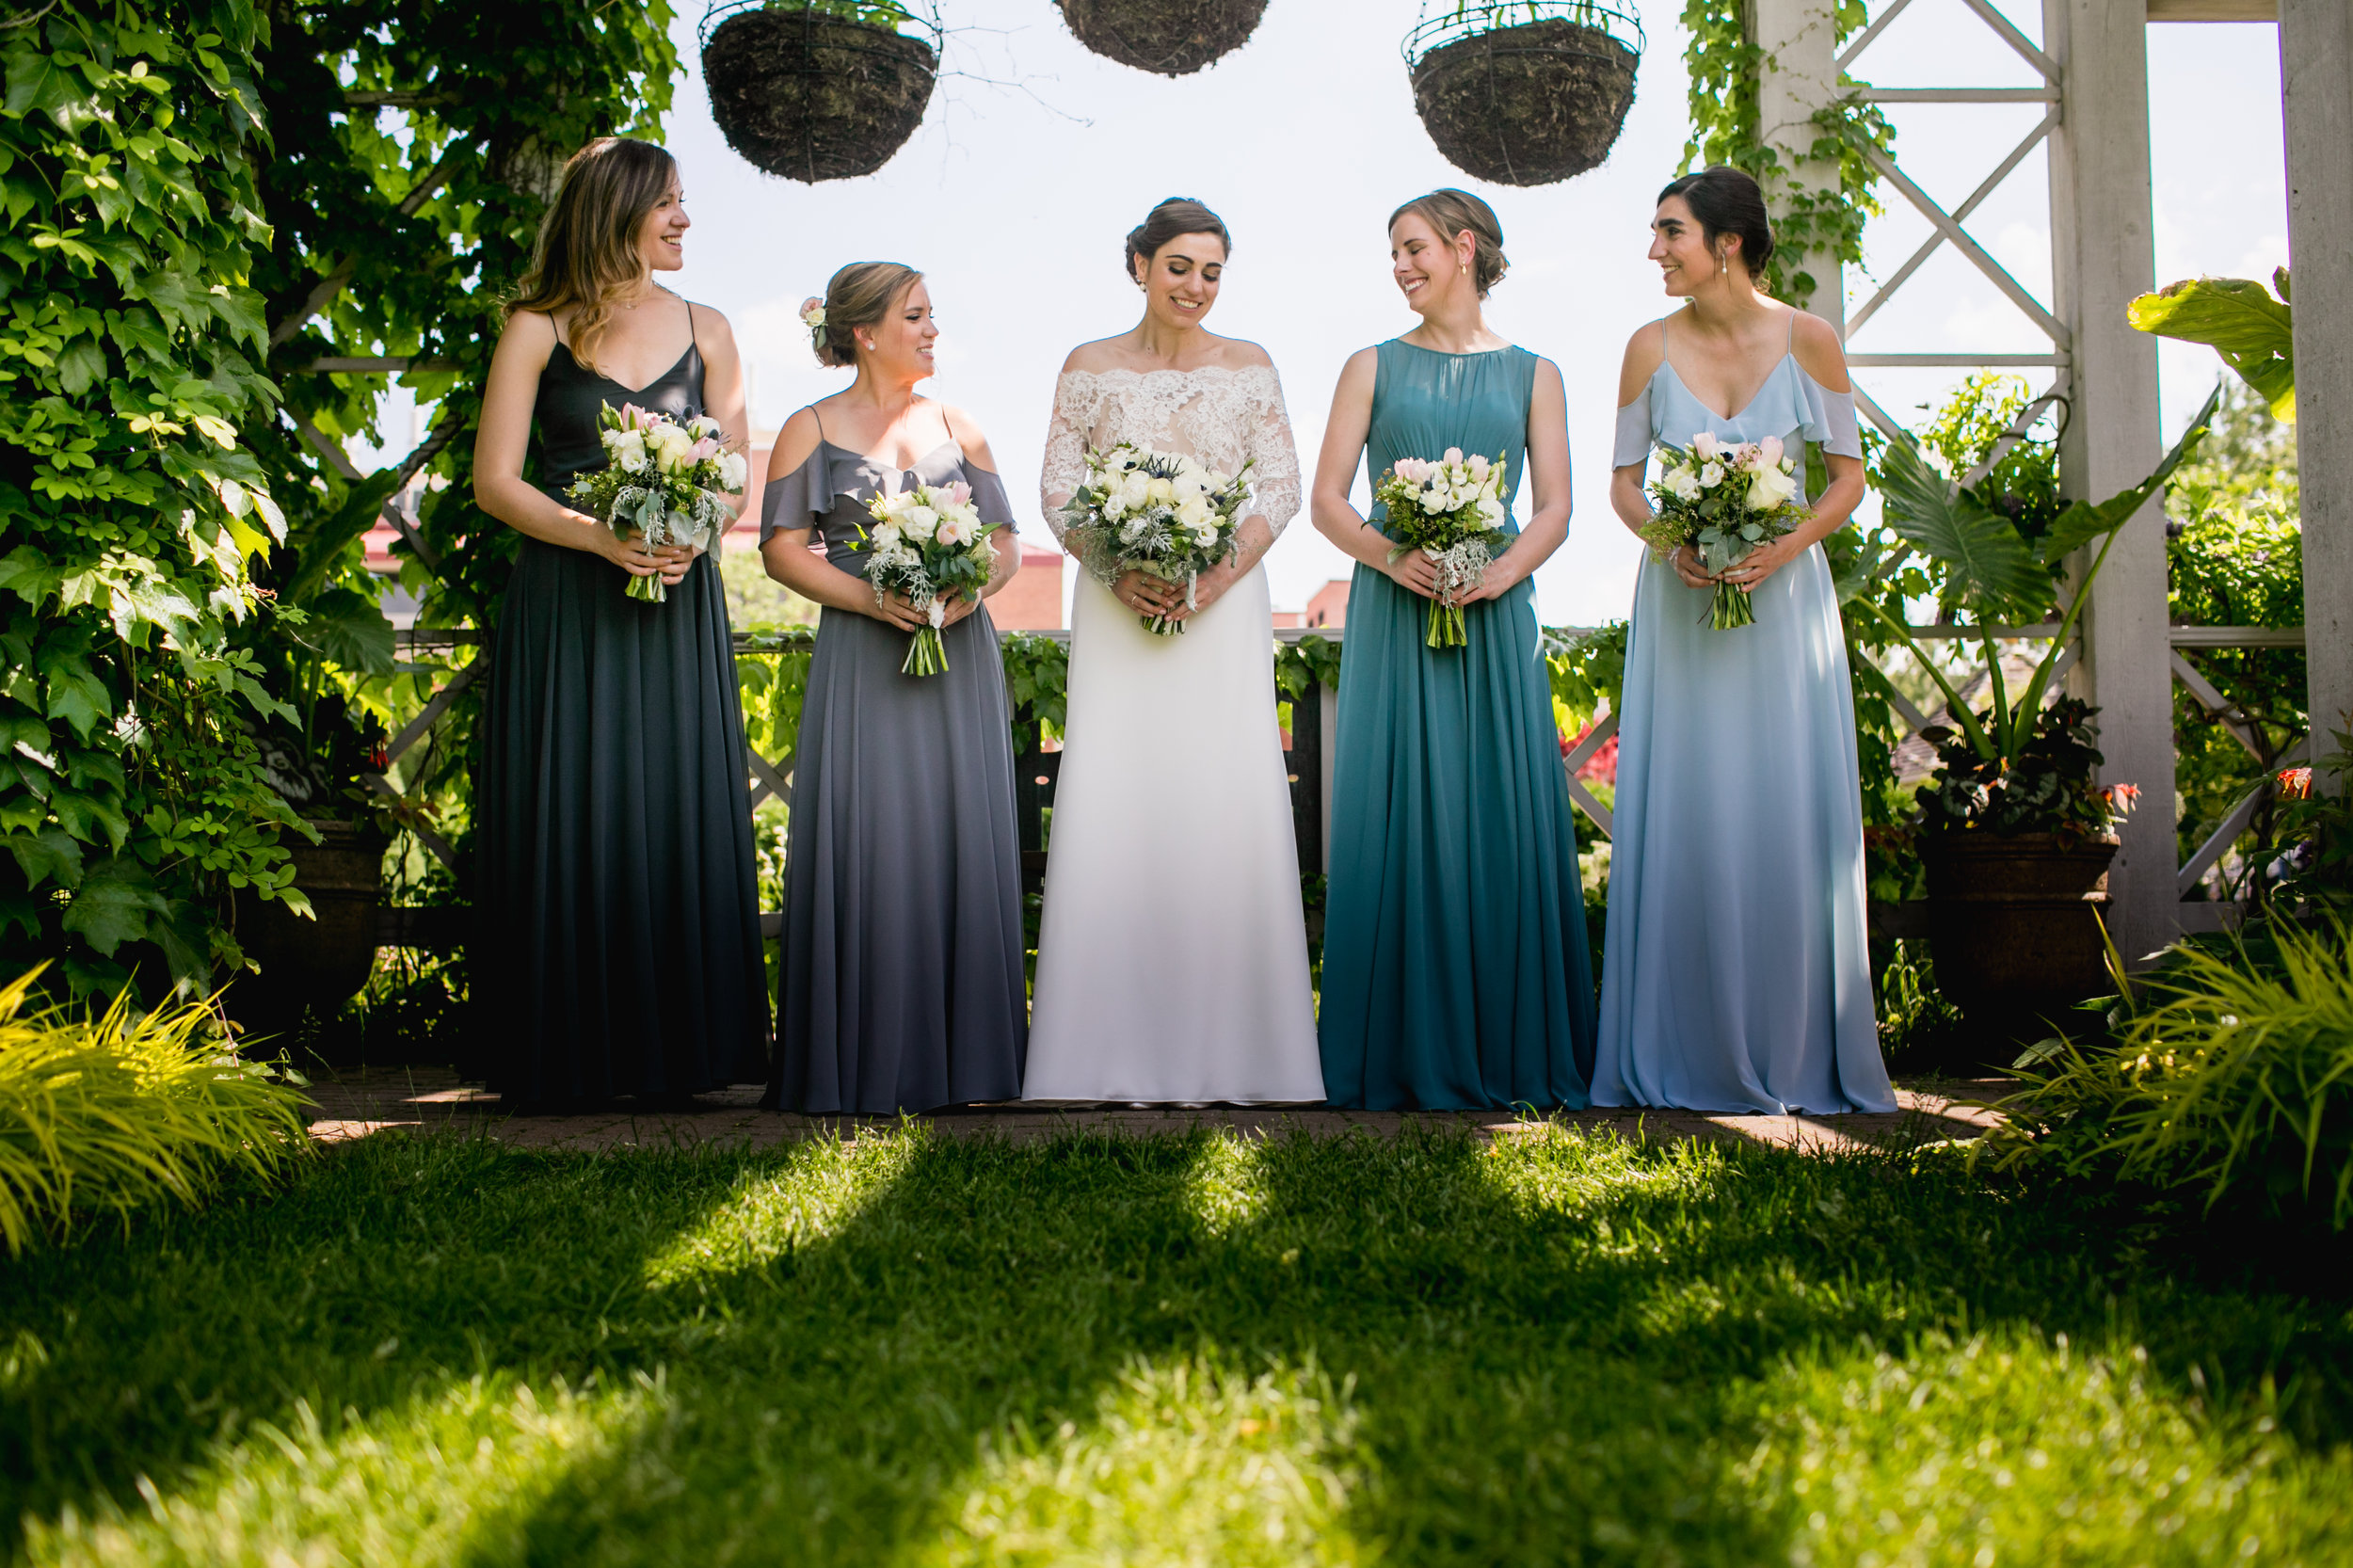 institutes-for-discovery-wedding003.jpg